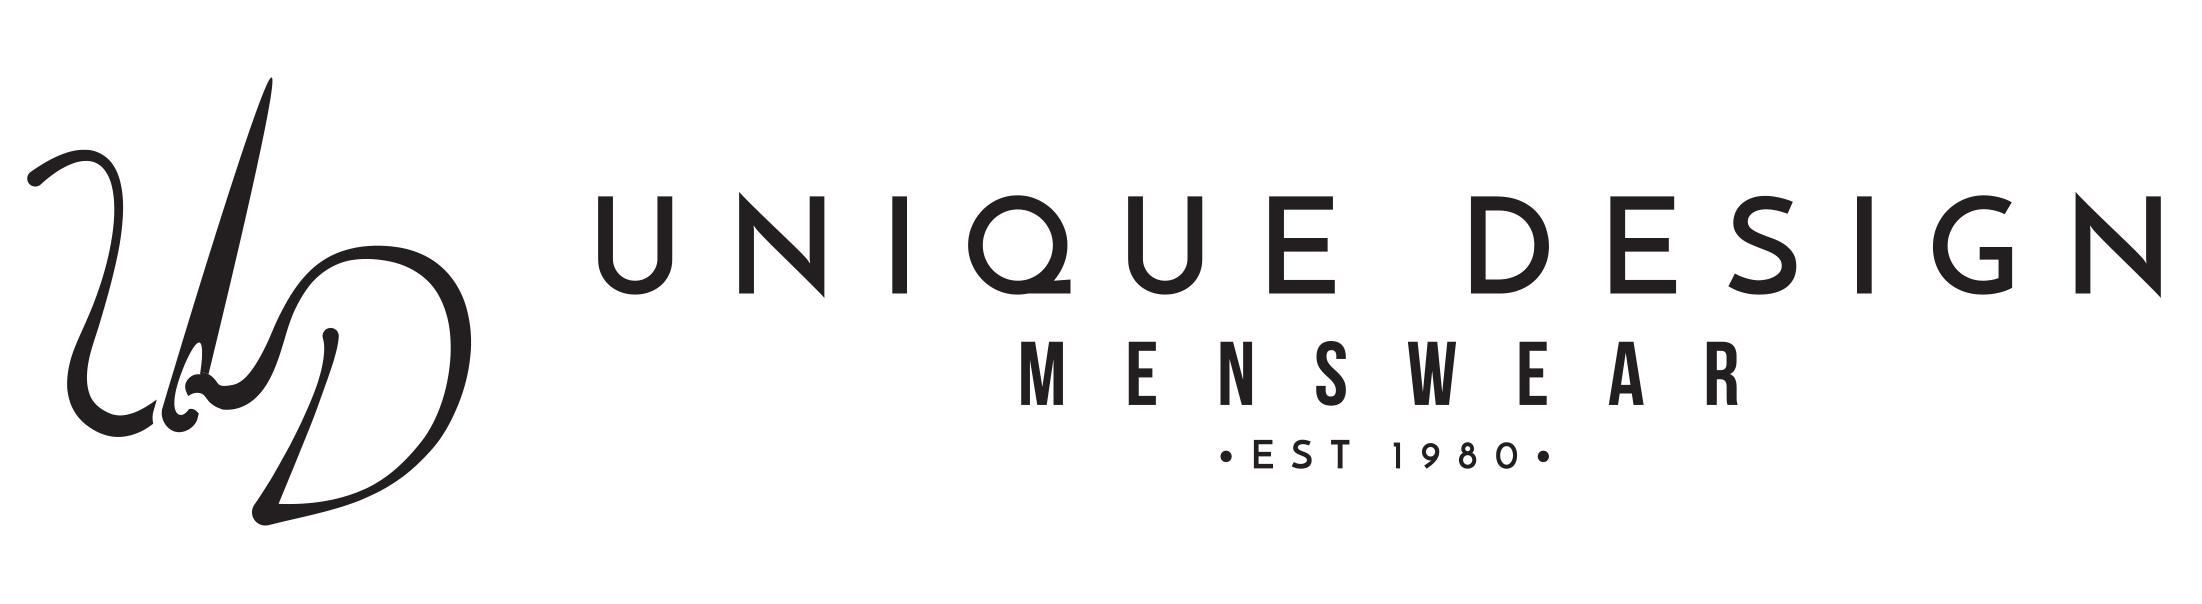 Unique Designs Menswear Logo